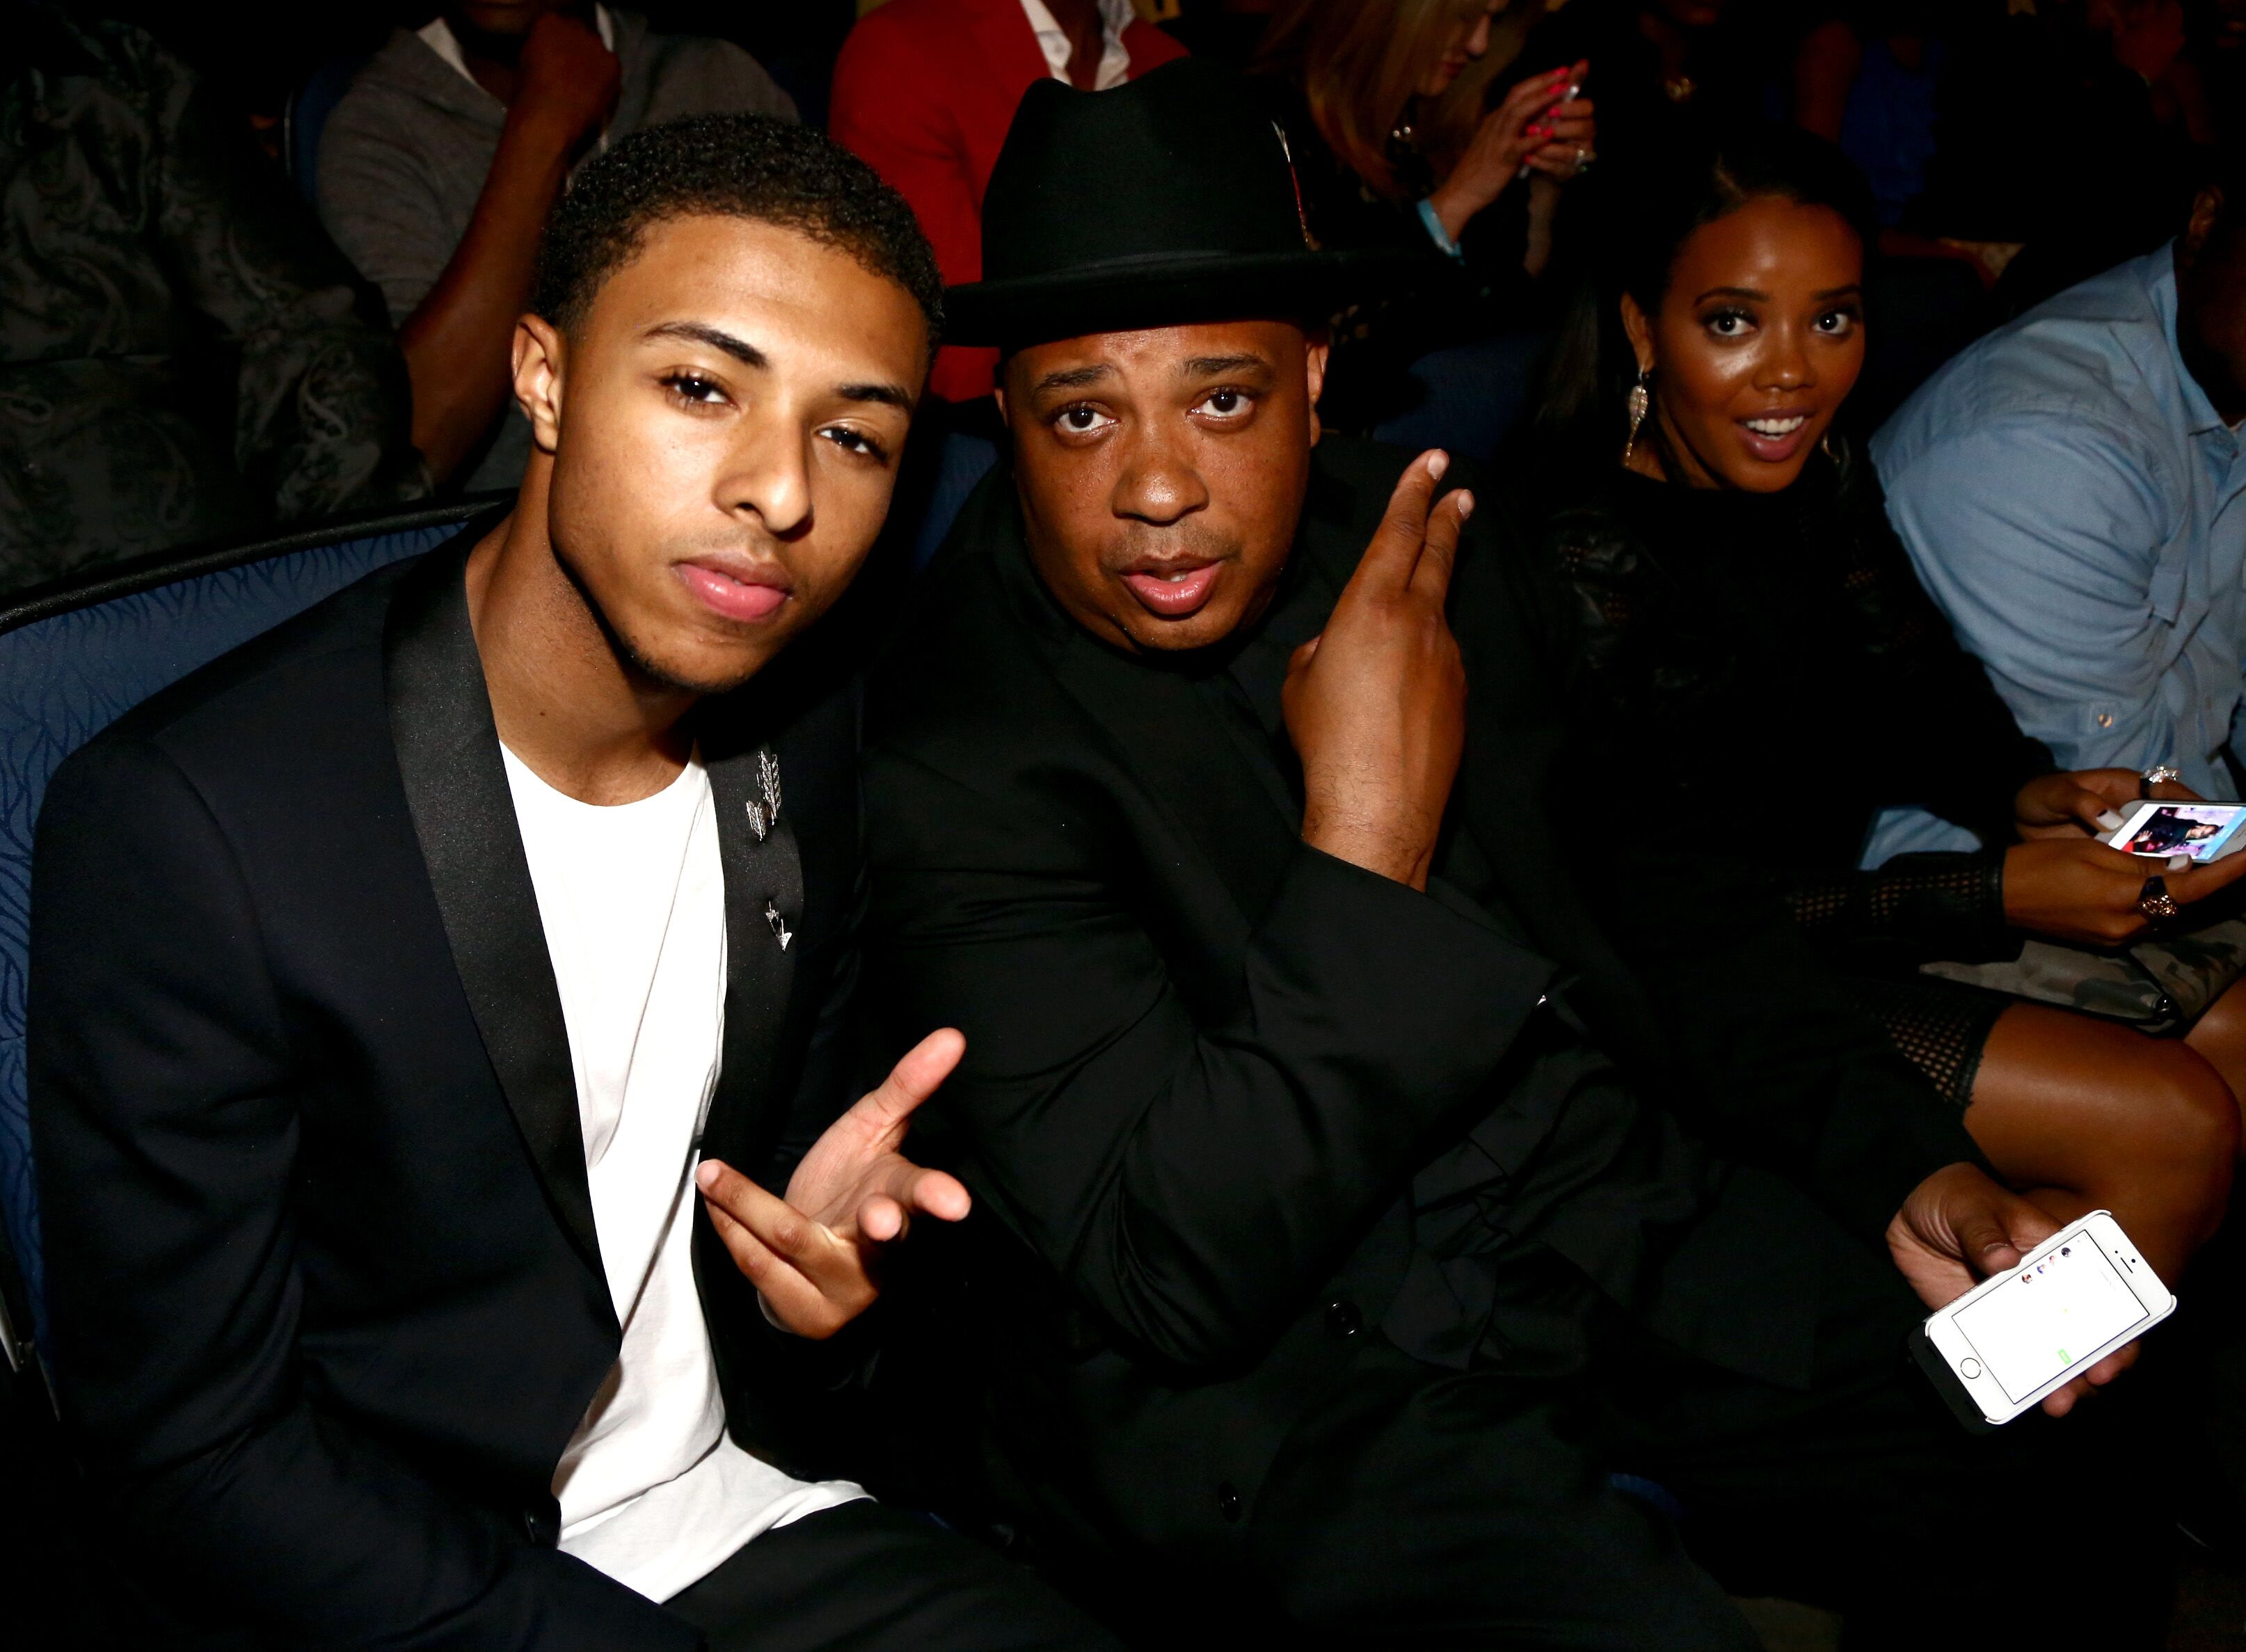 Rev Run with his son Diggy | Source: Getty Images/GlobalImagesUkraine